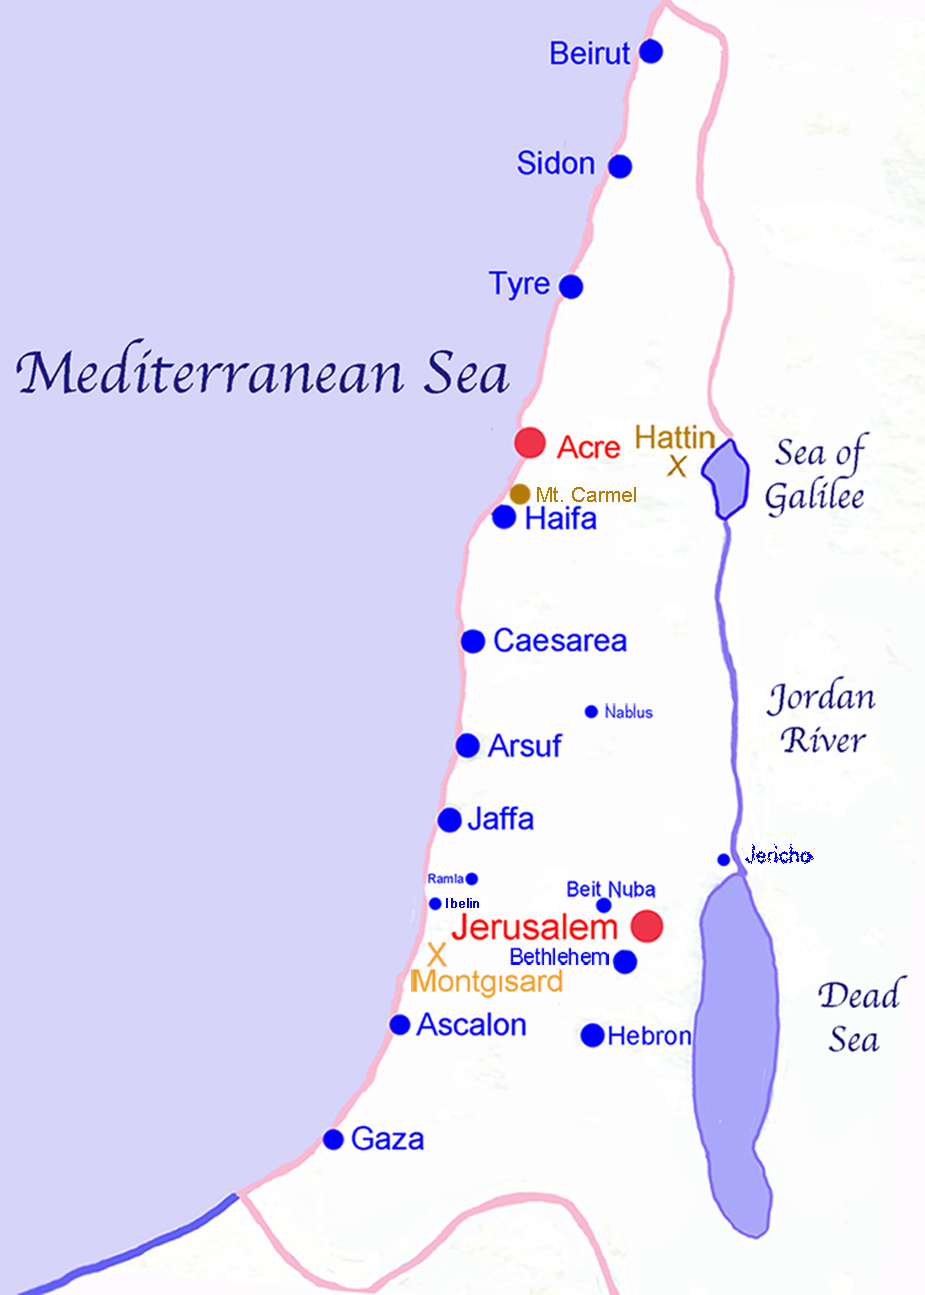 The United Kingdom of Israel under King David, circa 1000 BC.